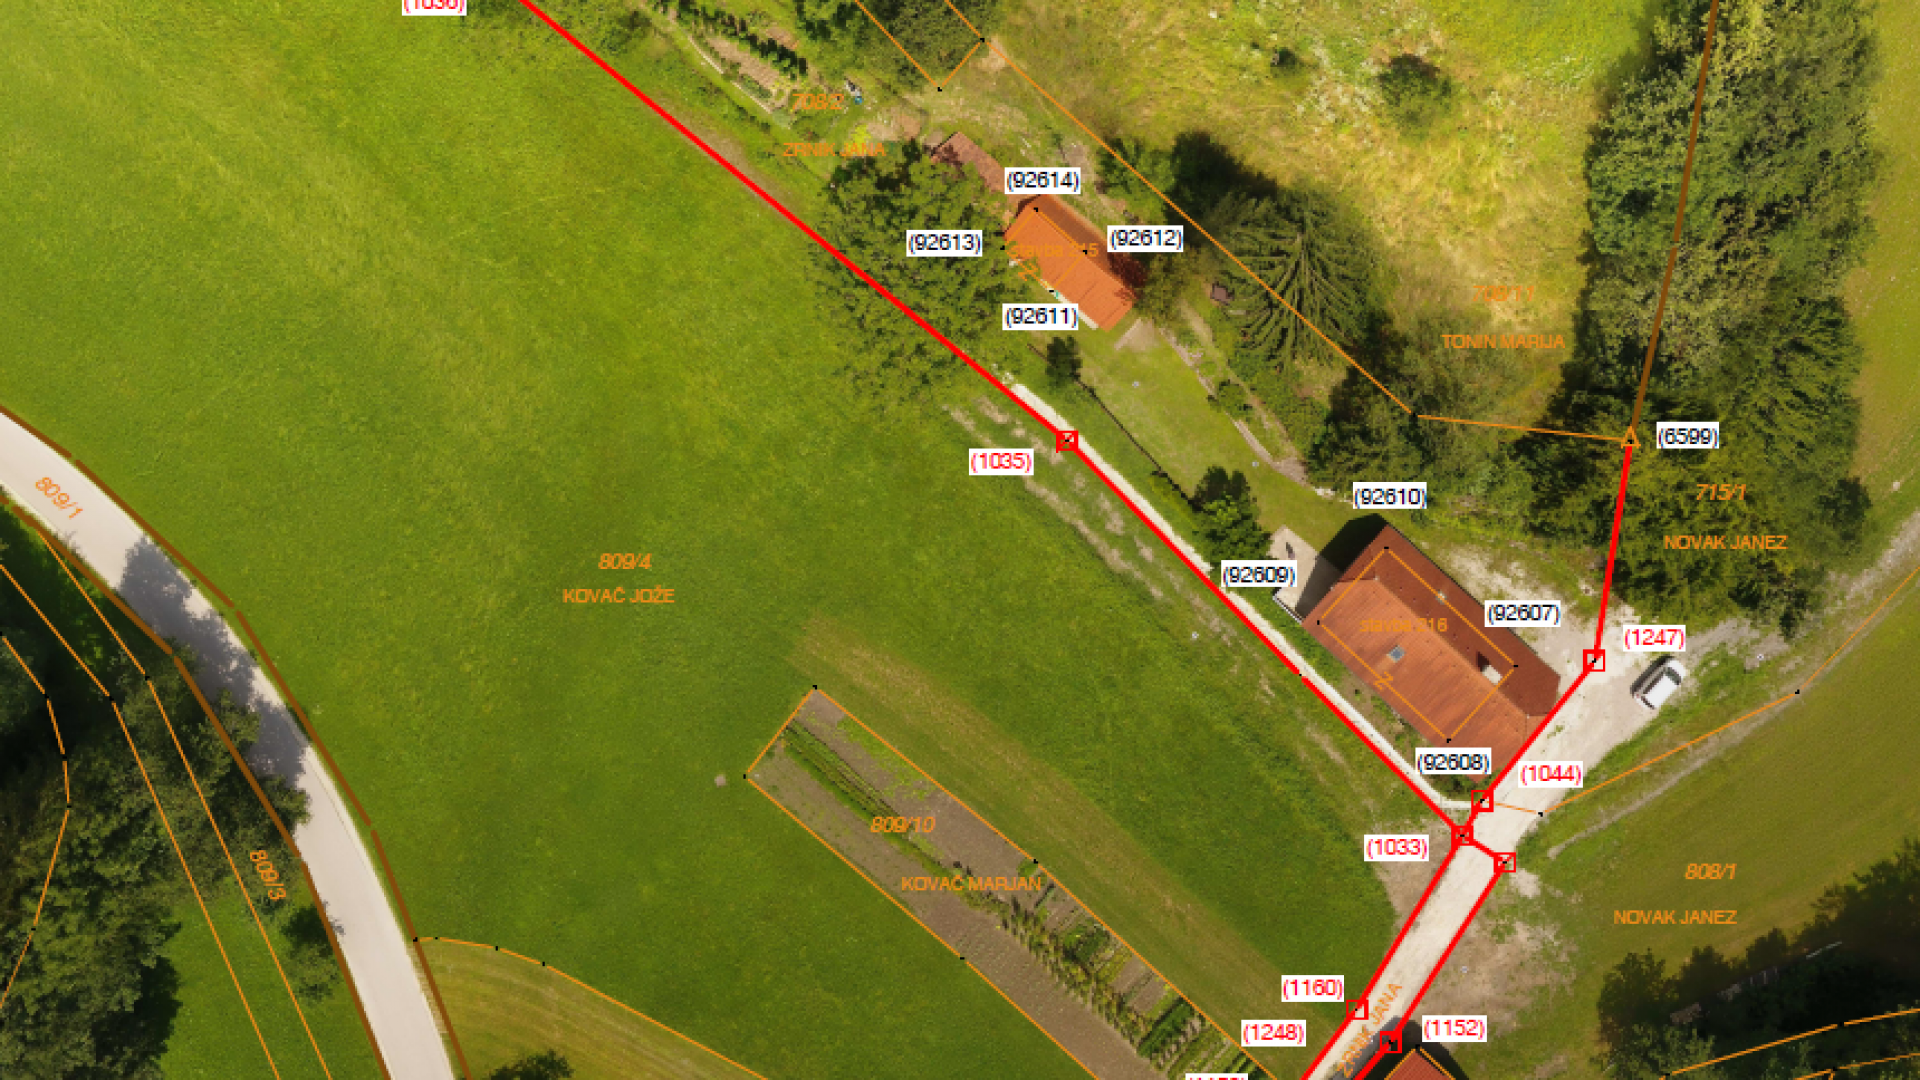 Mapping And Modelling Cadastral Boundaries Using Drones And - Aerial mapping software